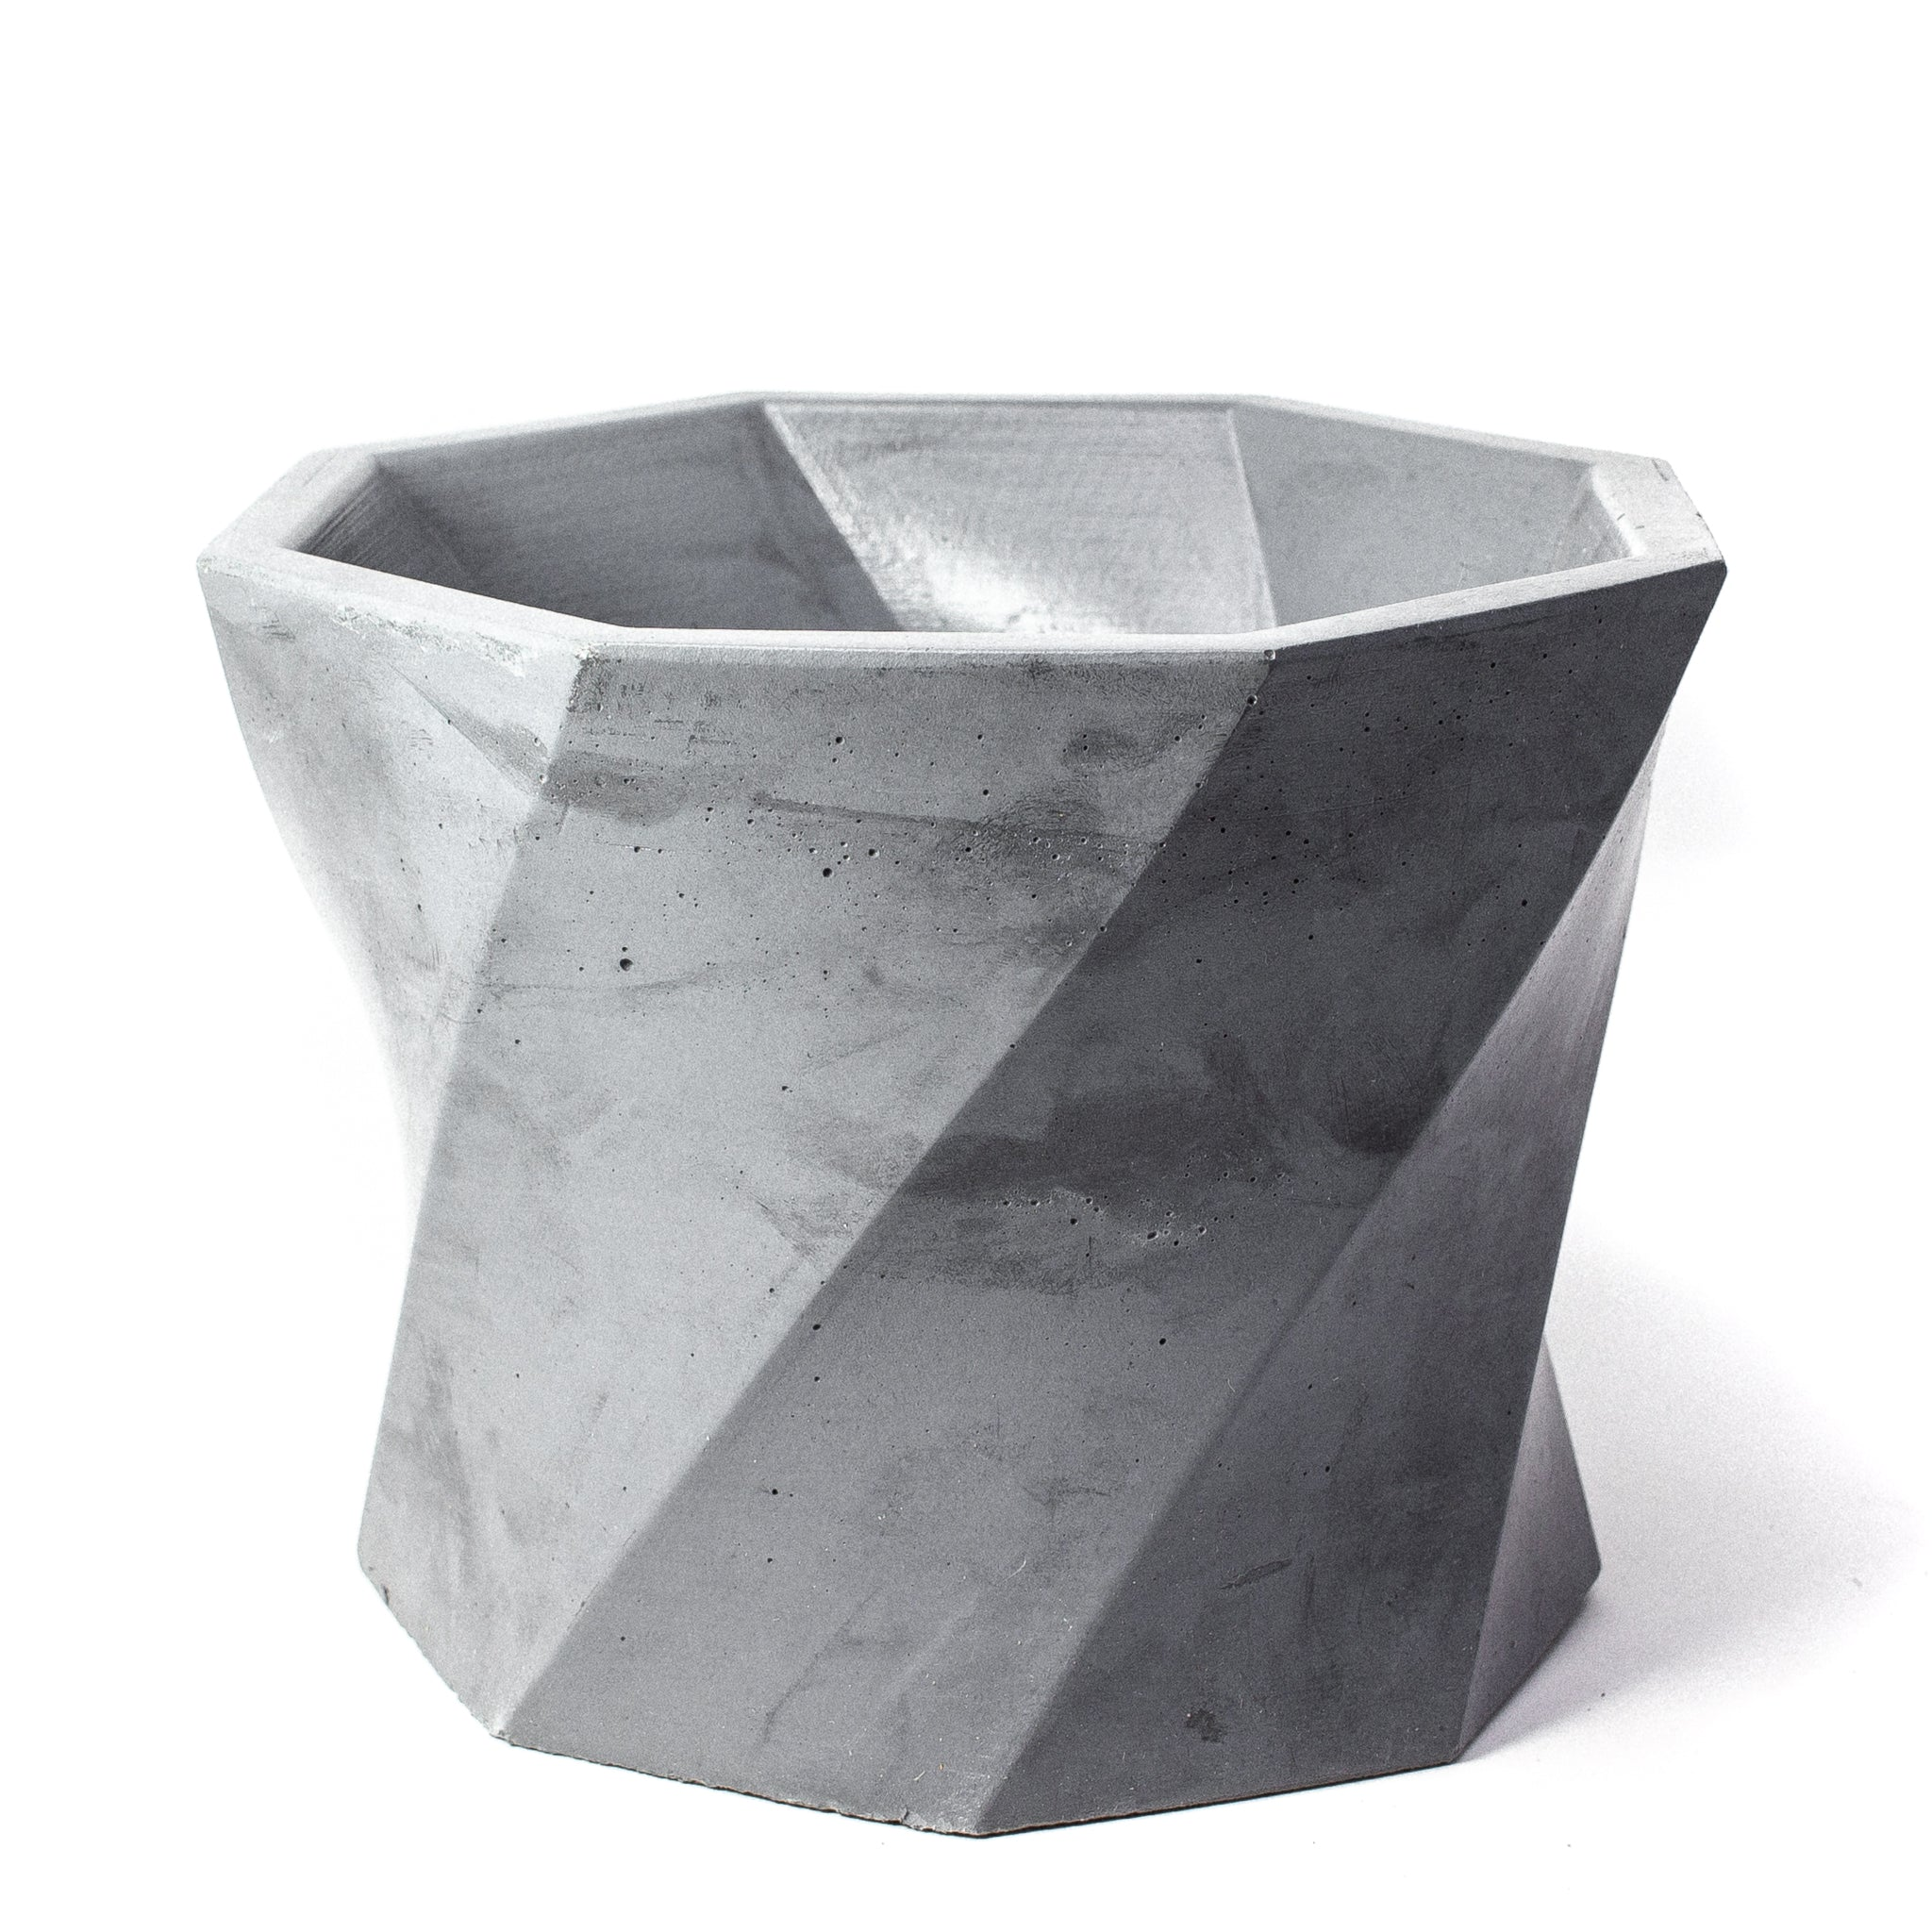 Concrete Twisted Octagon Planter